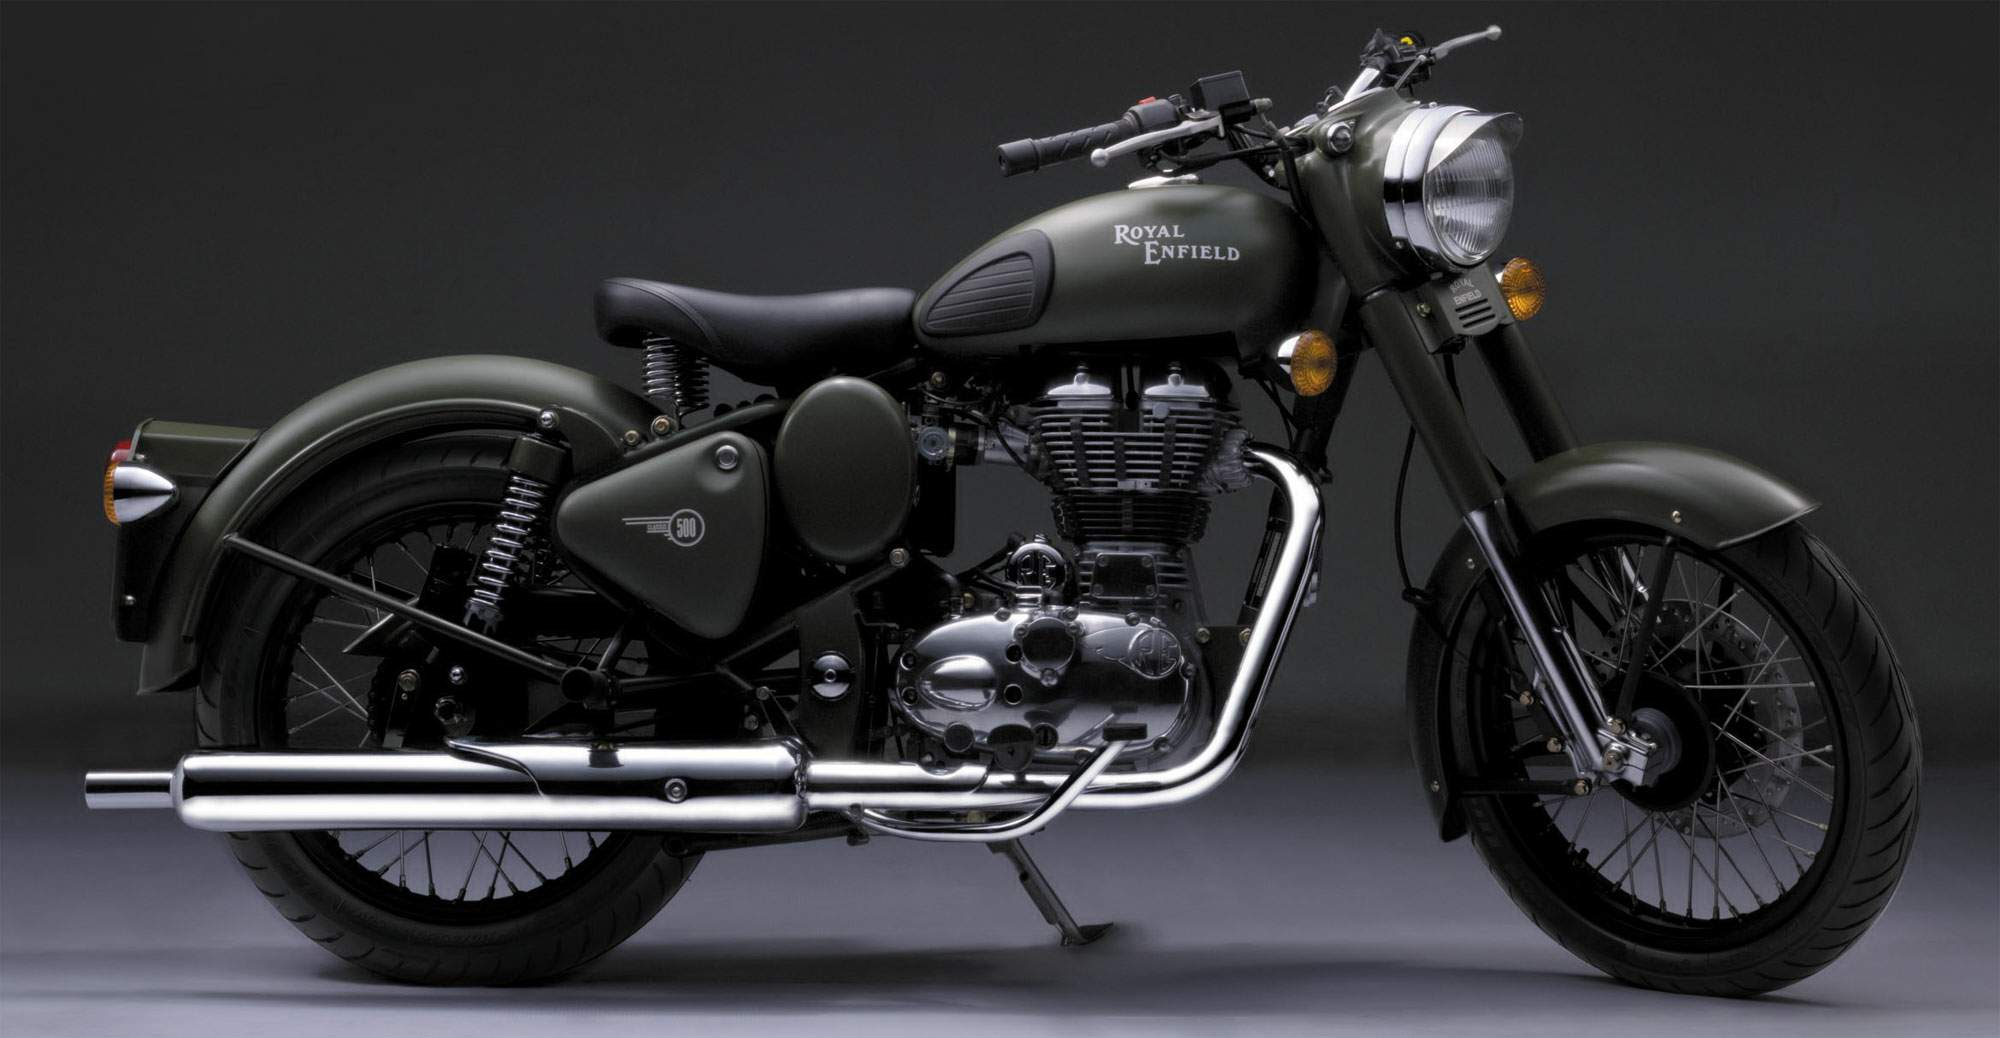 Royal Enfield Bullet 350 Classic 2009 images #123526